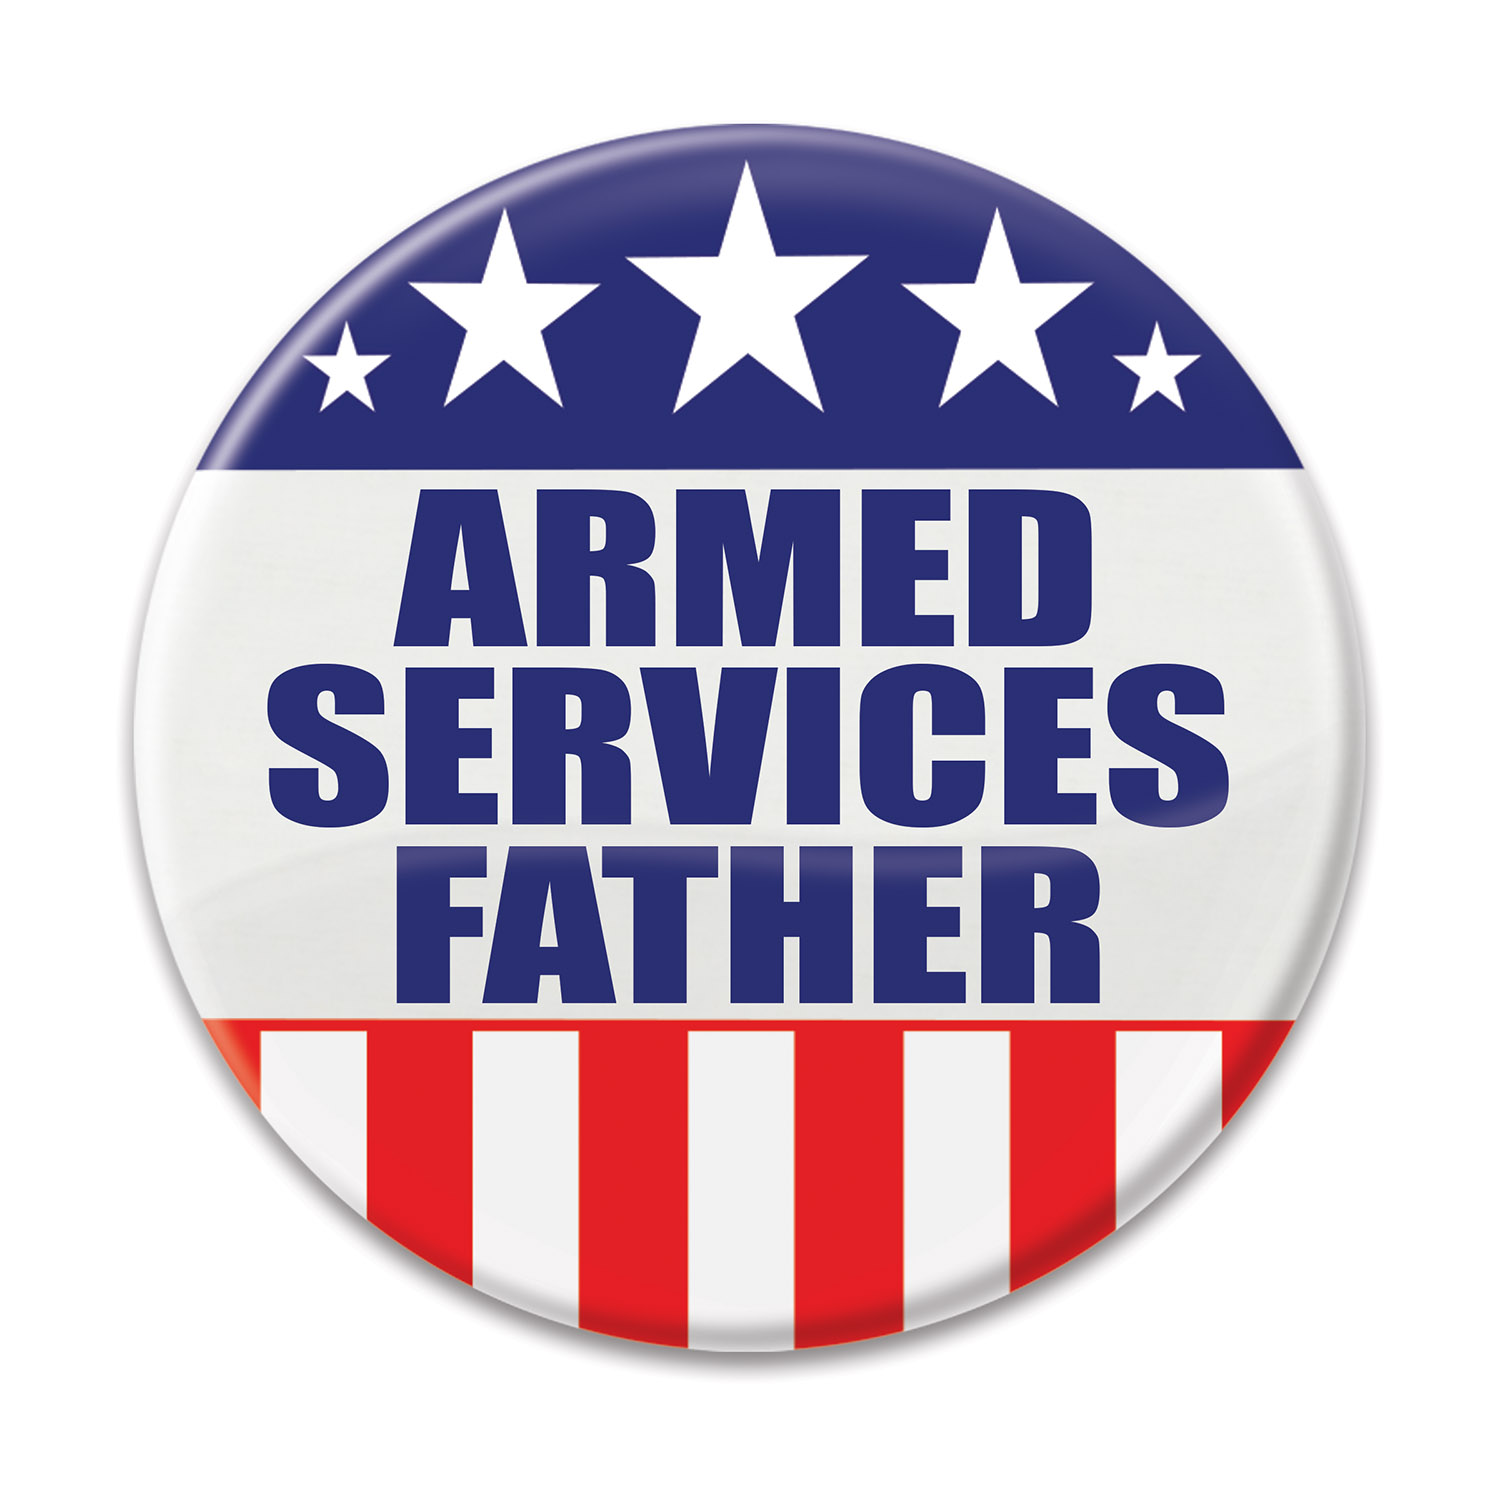 Image of ARMED SERVICES FATHER BUTTON (6)